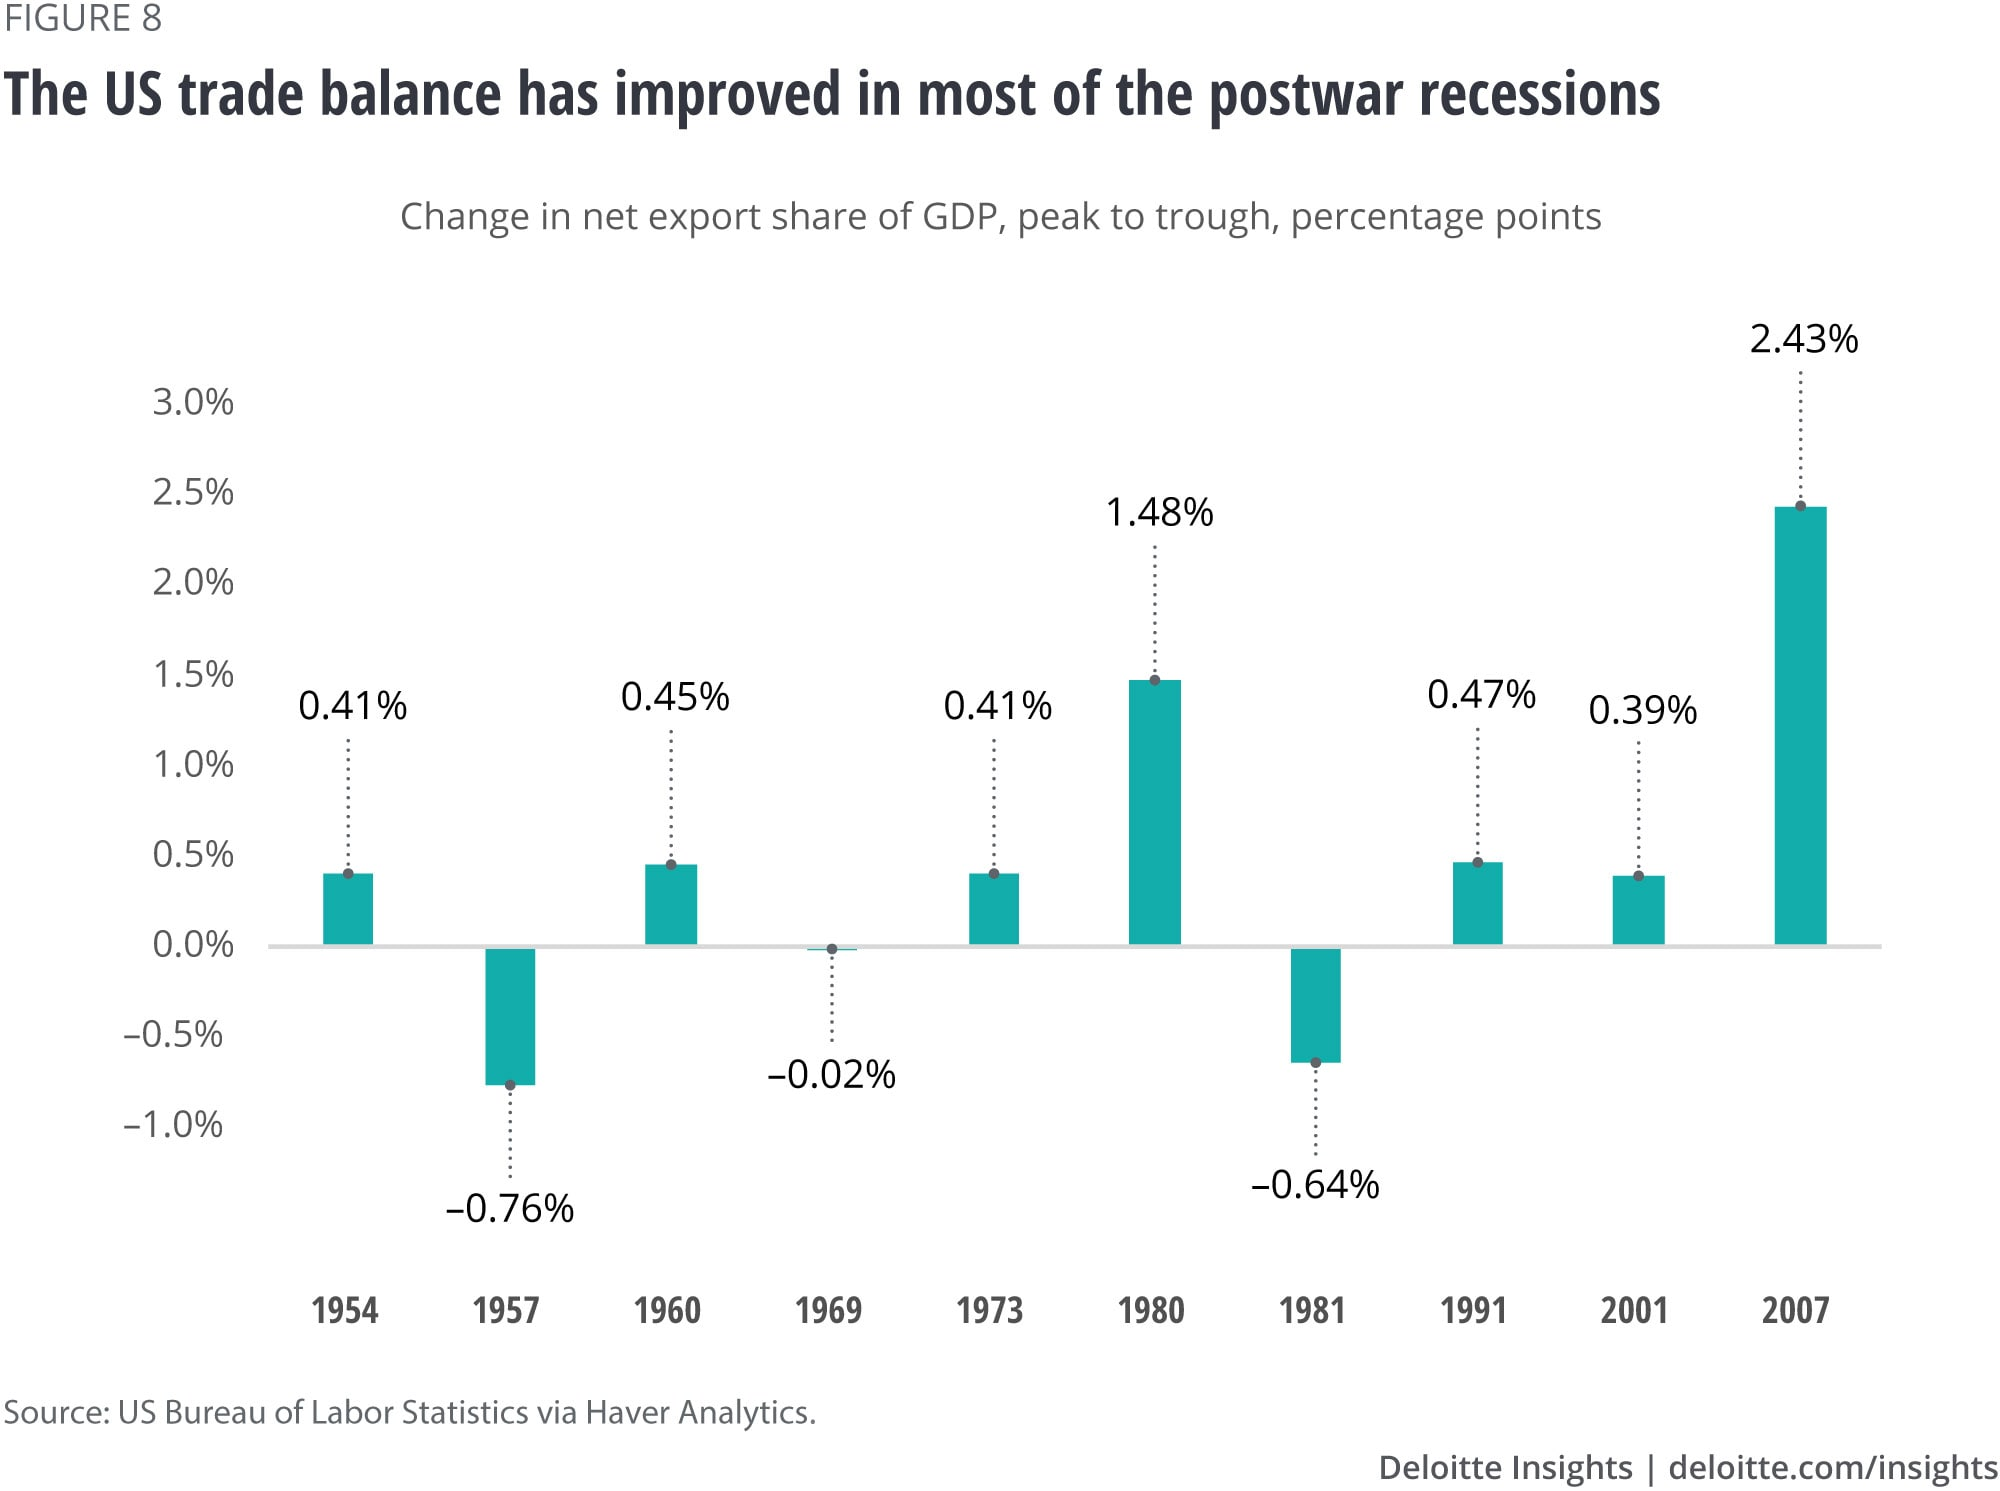 The US trade balance has improved in most of the postwar recessions